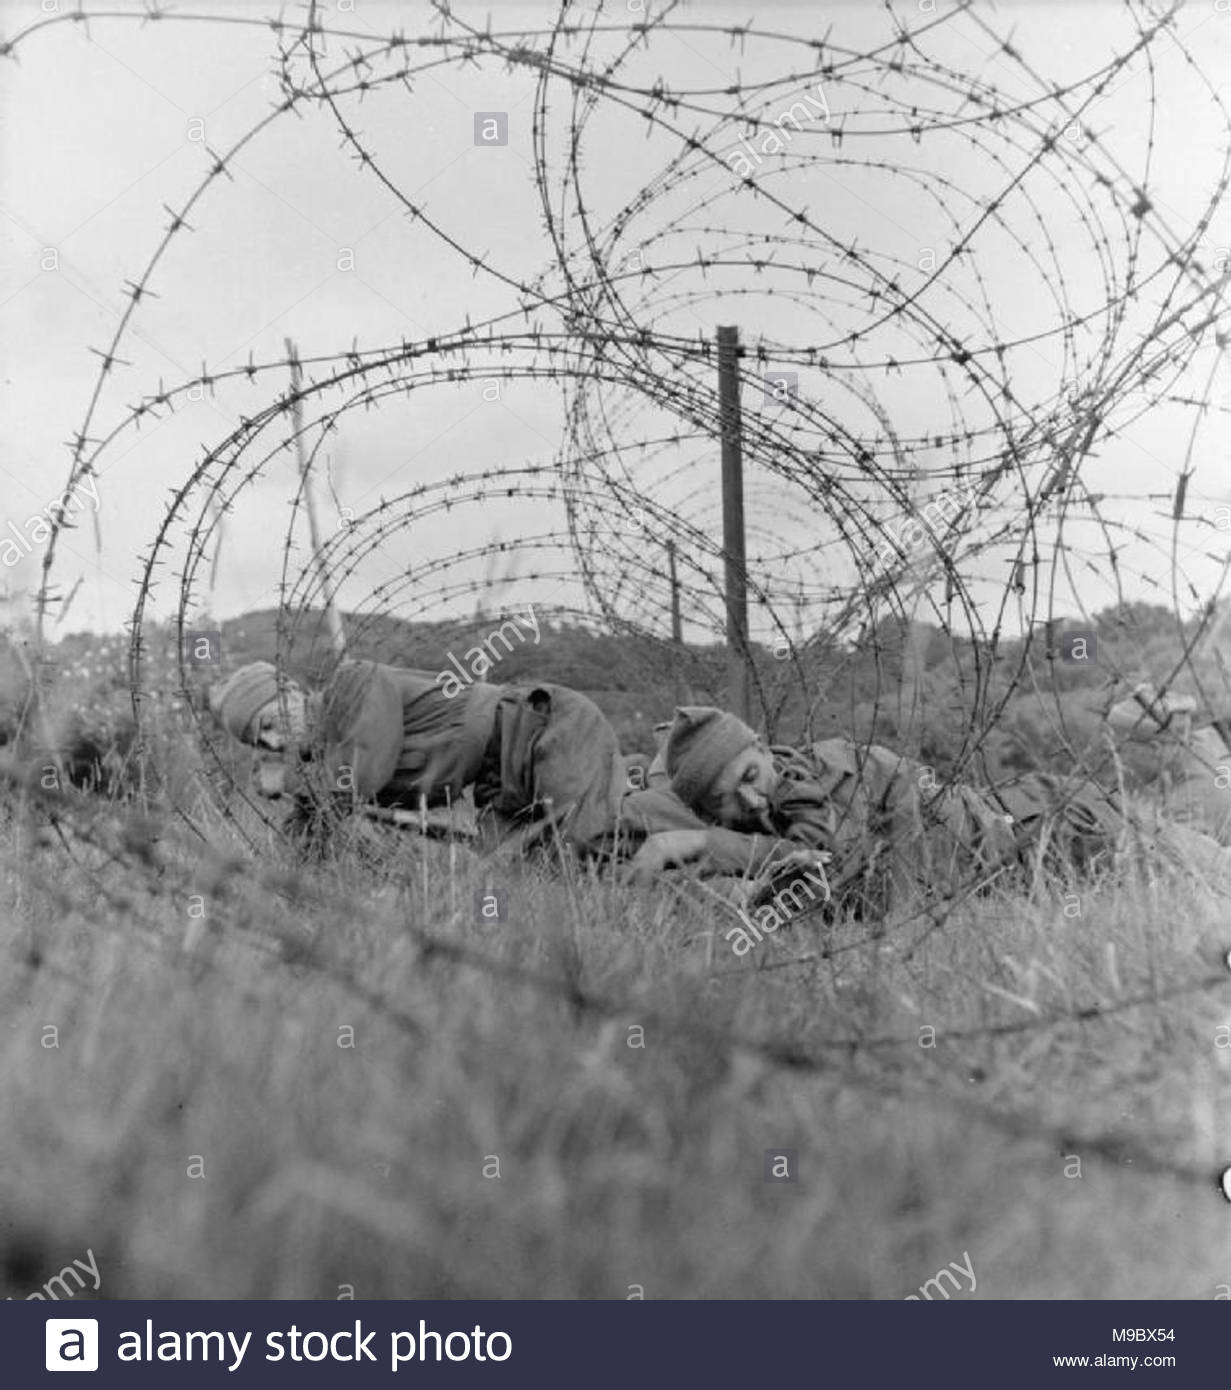 Barbed Wire Entanglements Stock Photos & Barbed Wire Entanglements ...